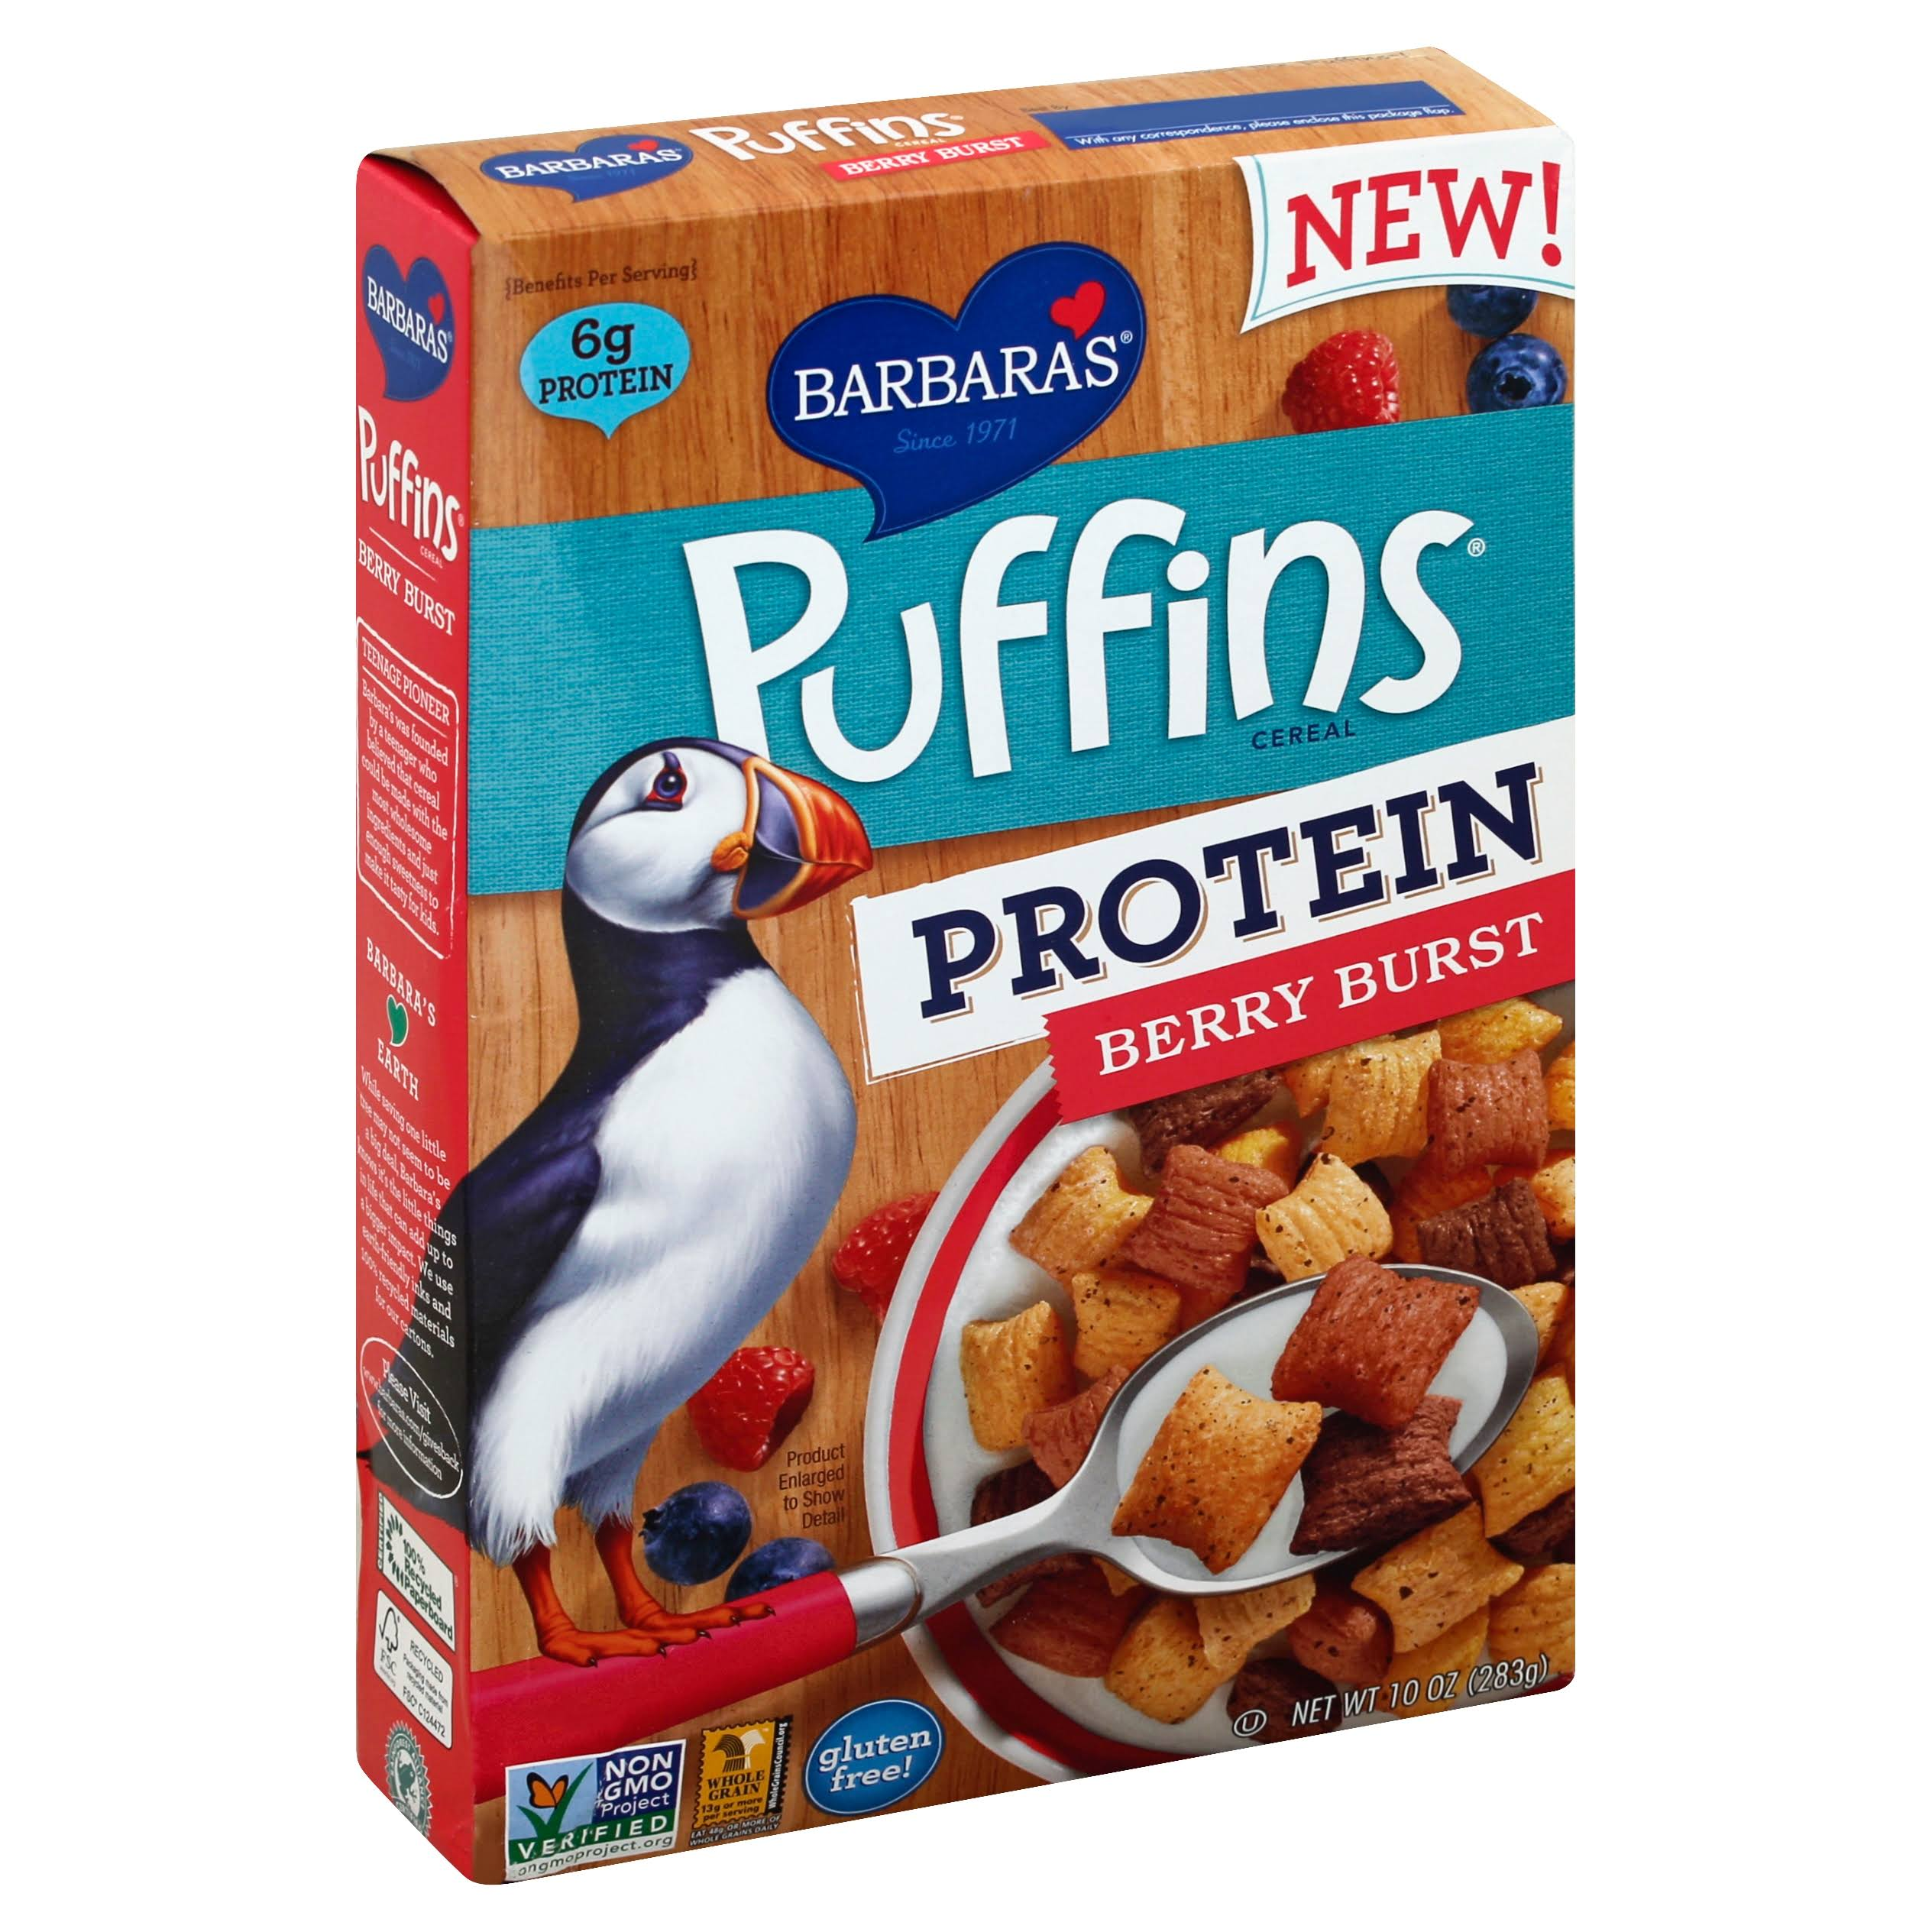 Barbaras Puffins Cereal, Protein, Berry Burst - 10 oz